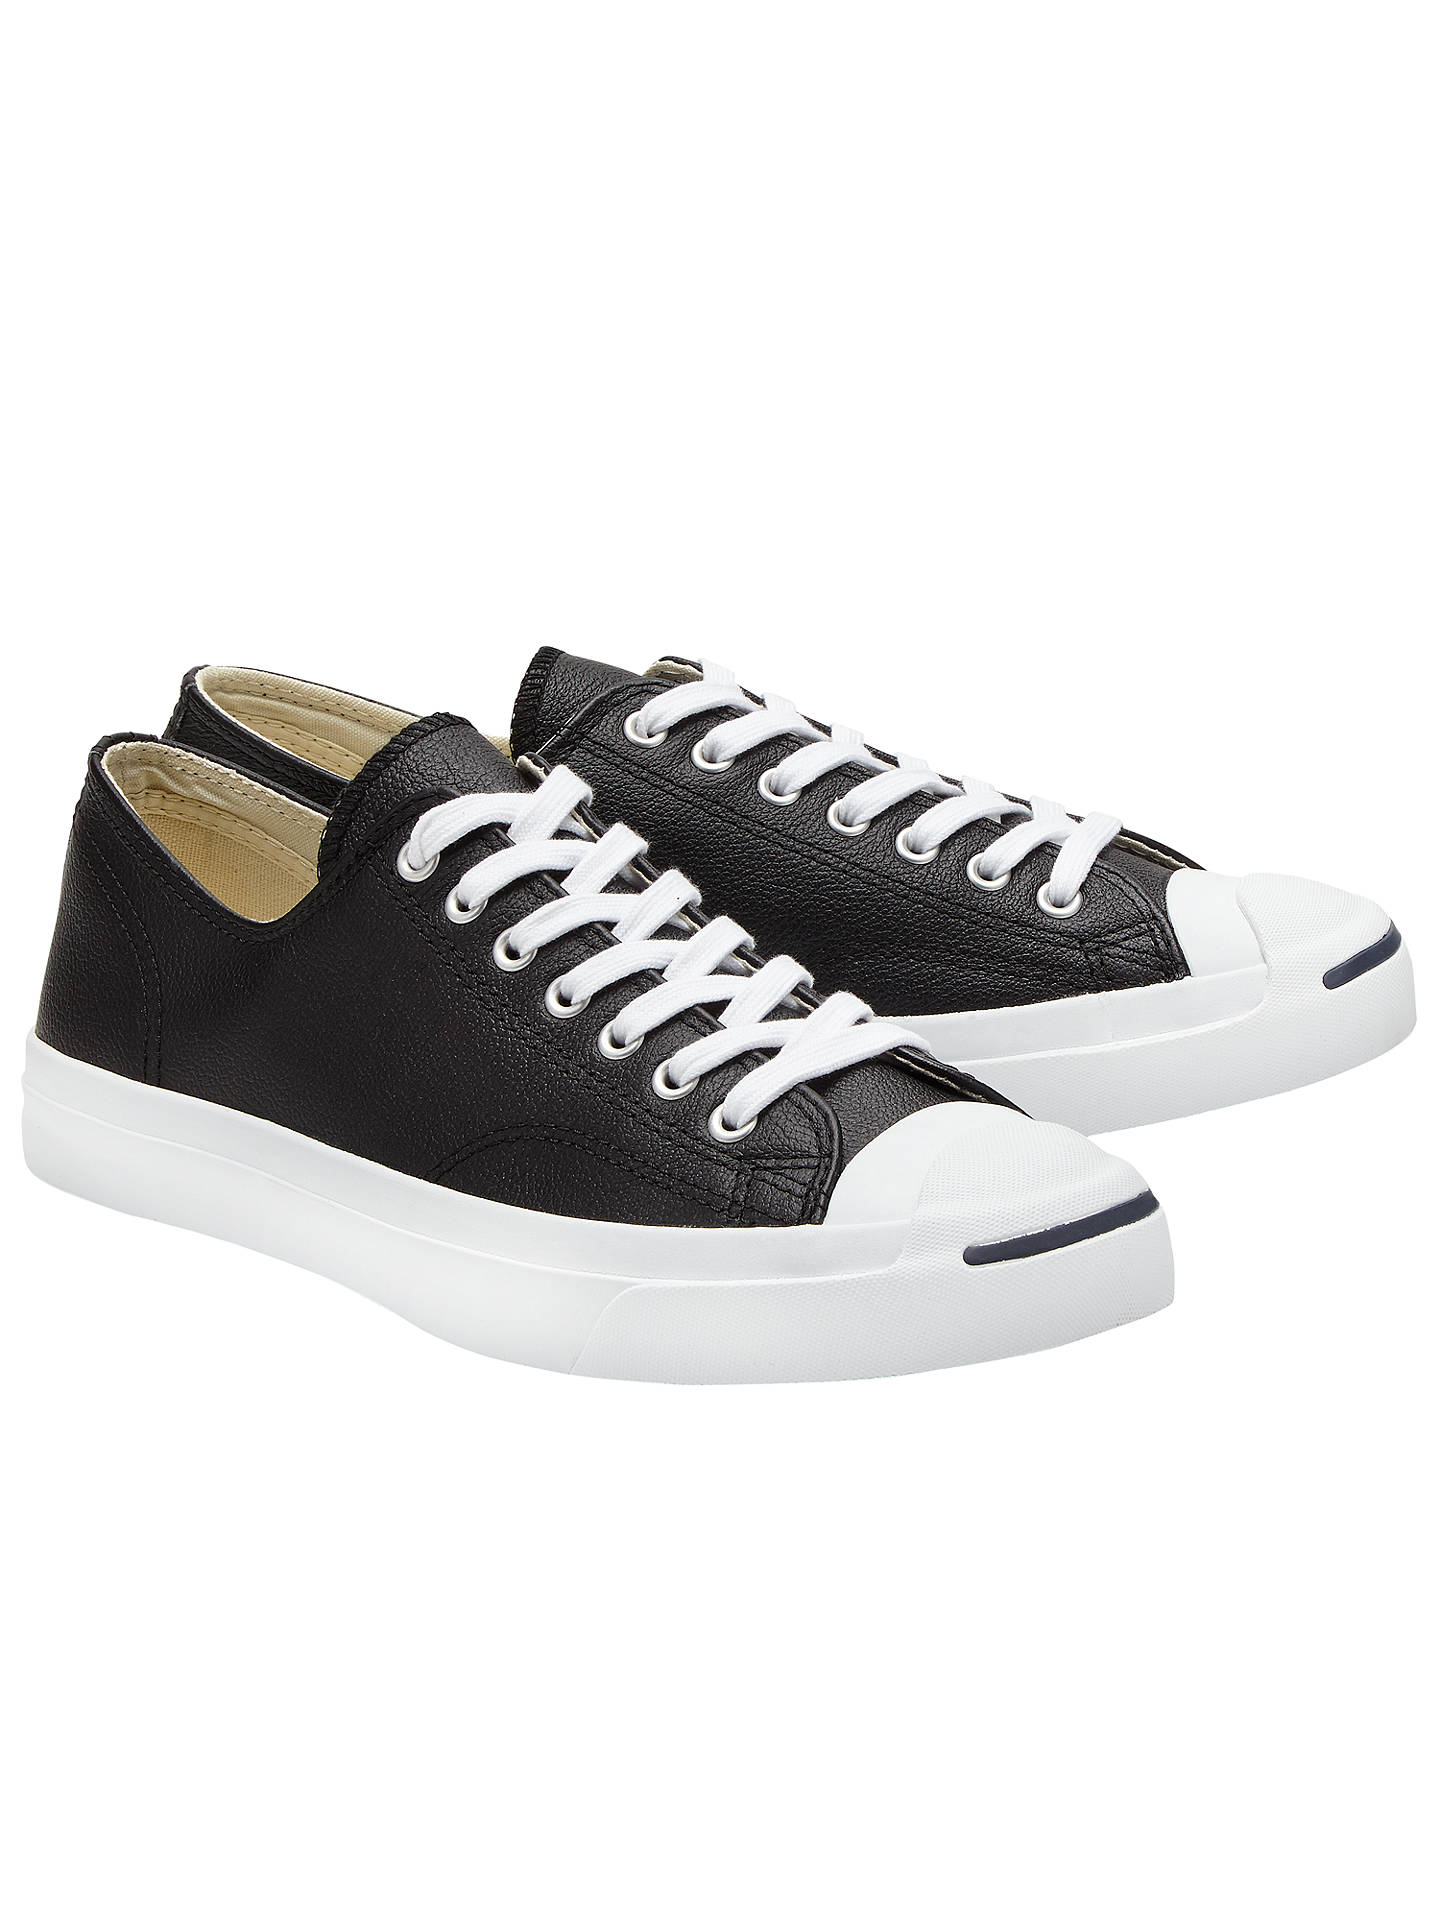 49092c5b7705 Converse Jack Purcell Lace-Up Leather Trainers at John Lewis   Partners